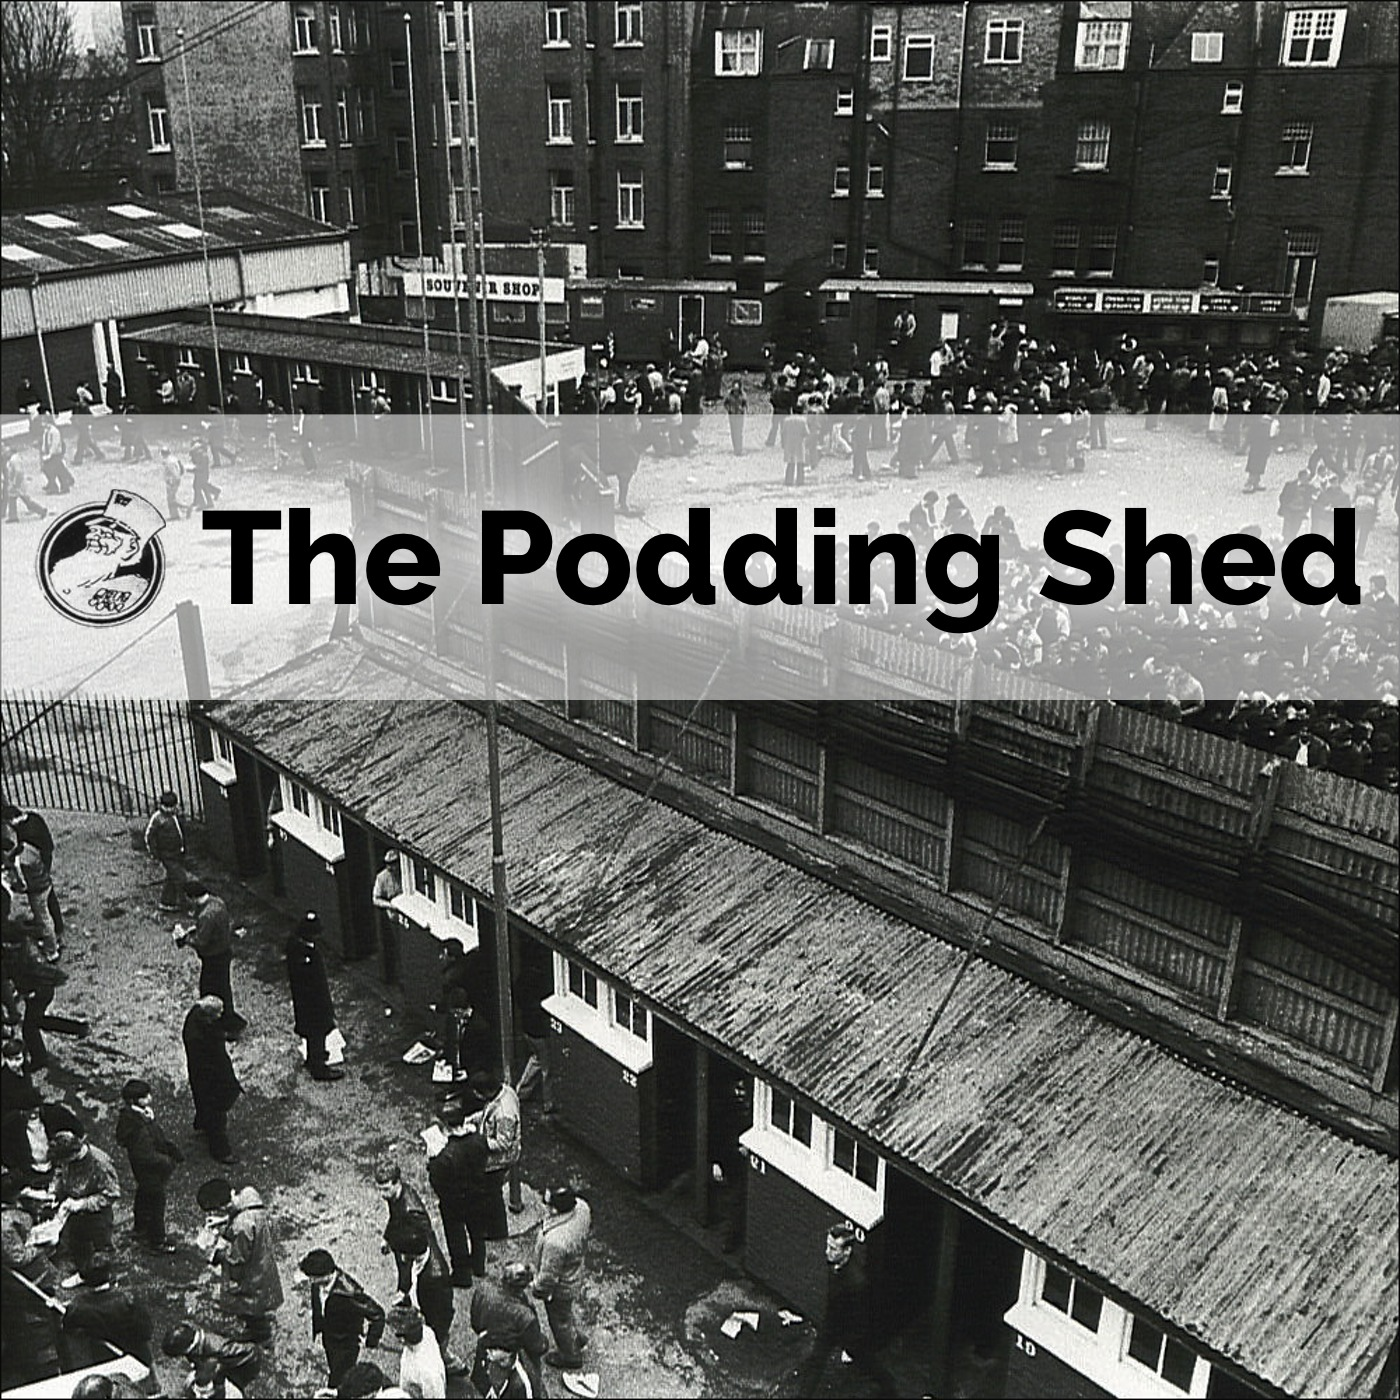 The Podding Shed